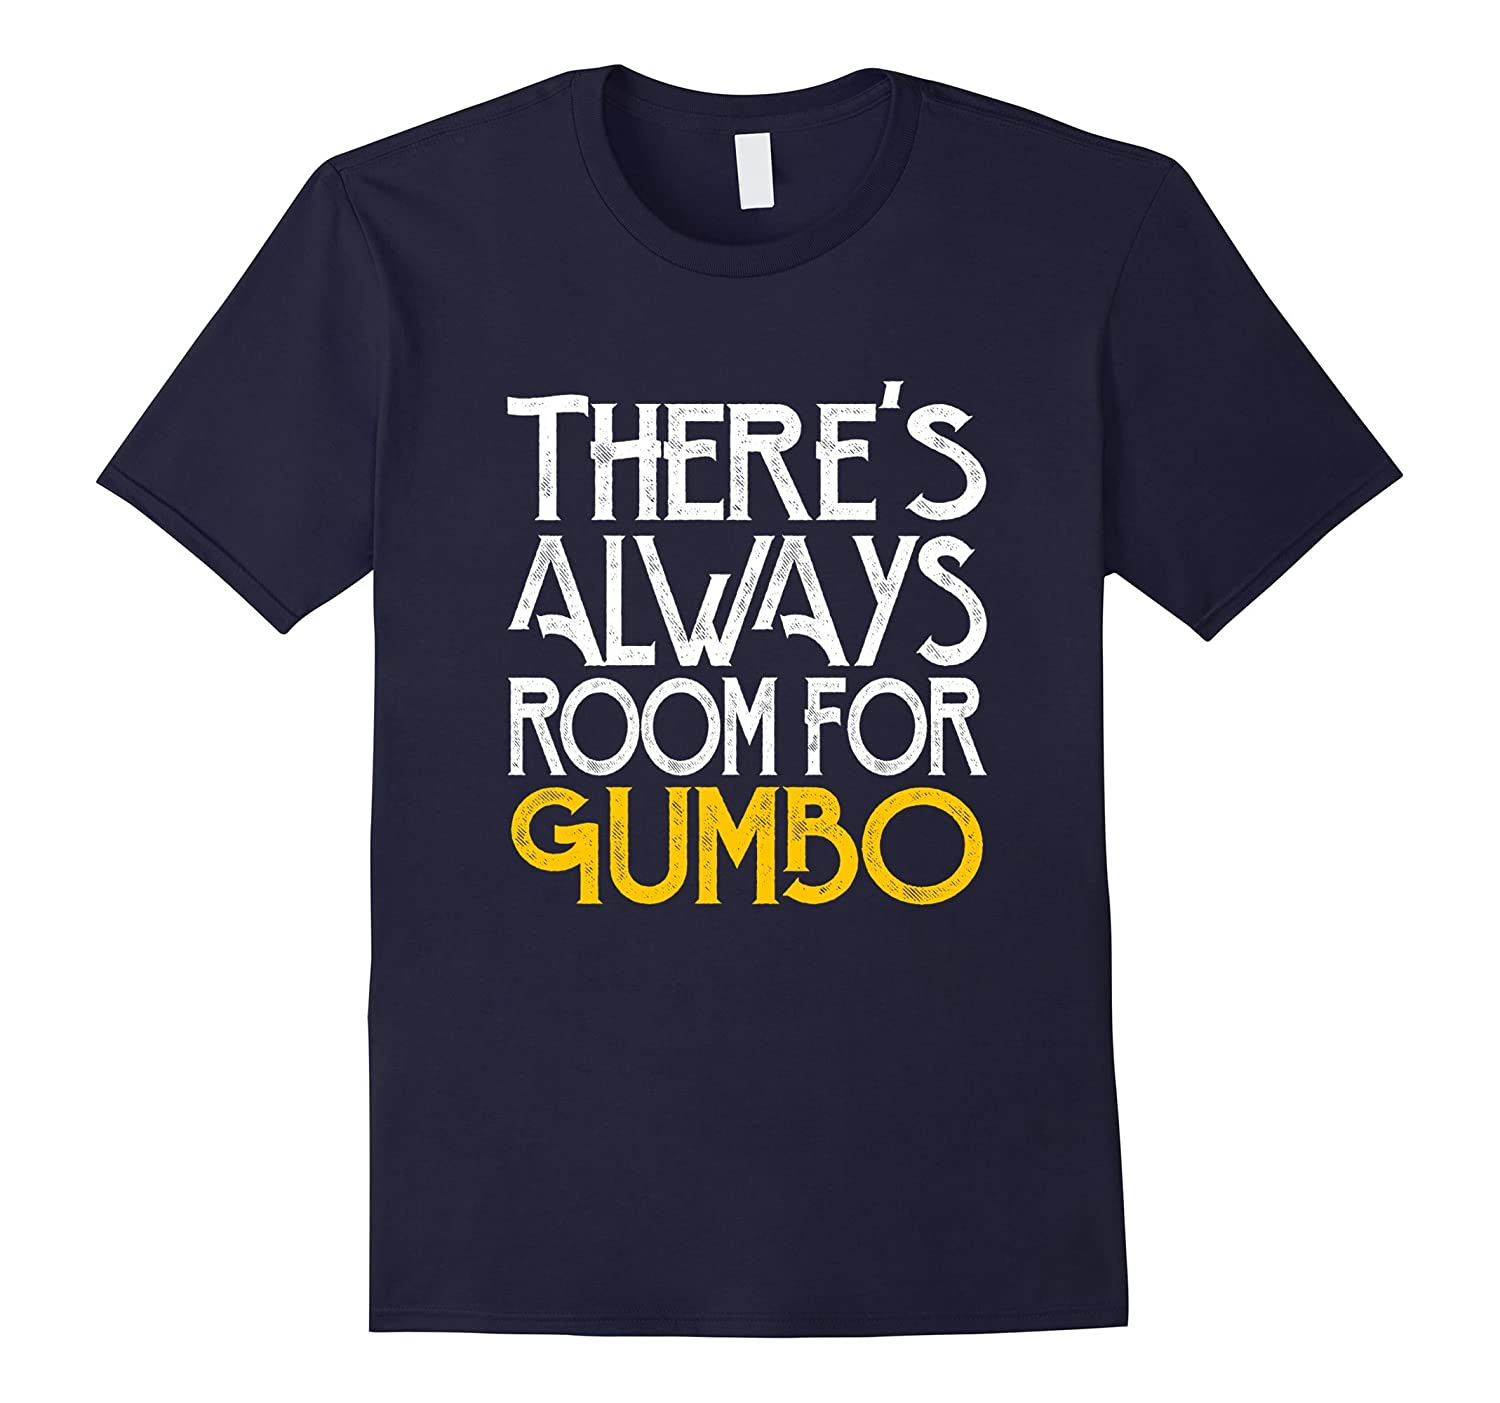 Theres always room for gumbo foodie shirt-Vaci